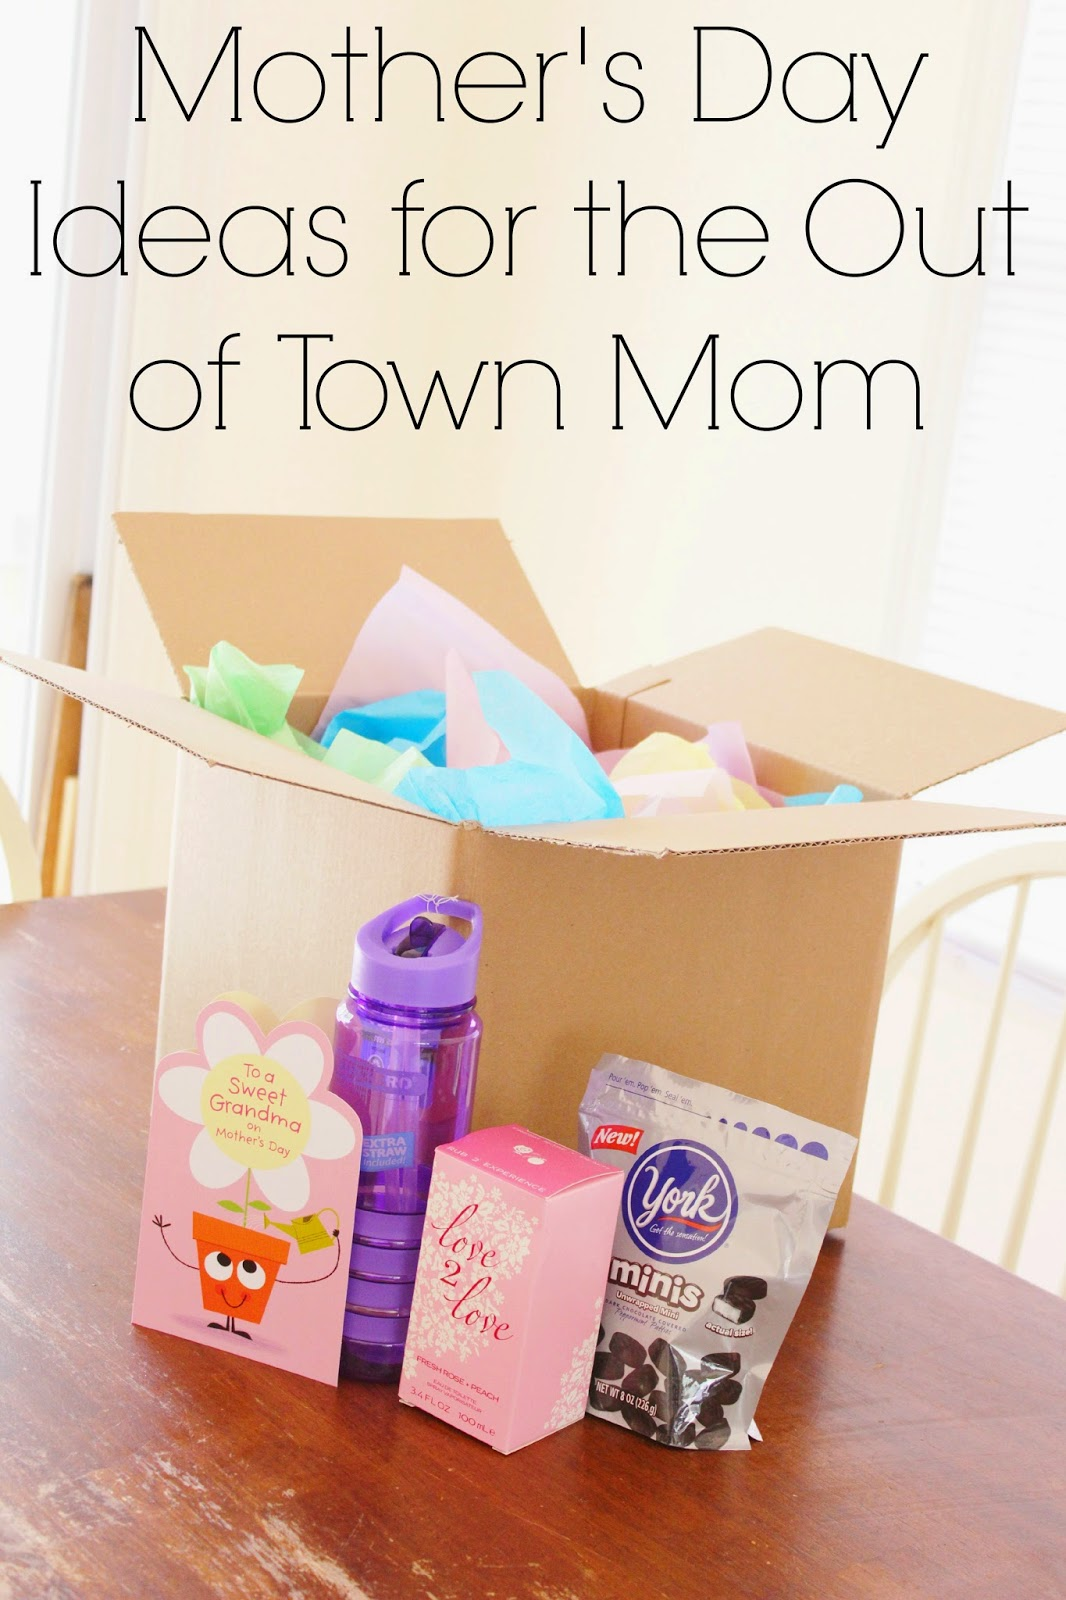 6 Mother 39 S Day Ideas For The Out Of Town Mom The Happy